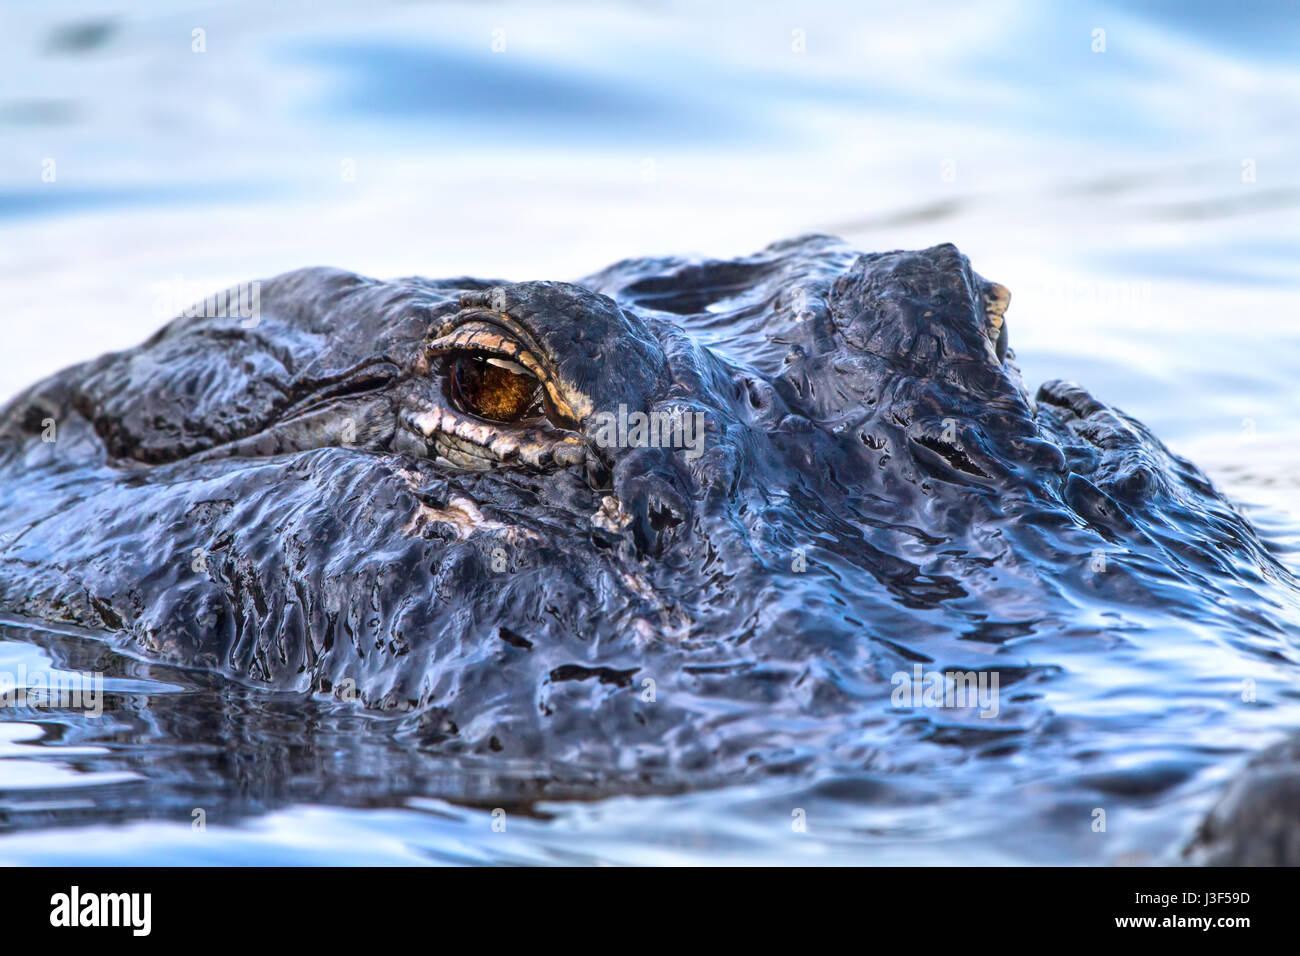 A 12 foot alligator patrols the waters in the Florida Everglades. This was a 12 footer and frequents the same area. - Stock Image